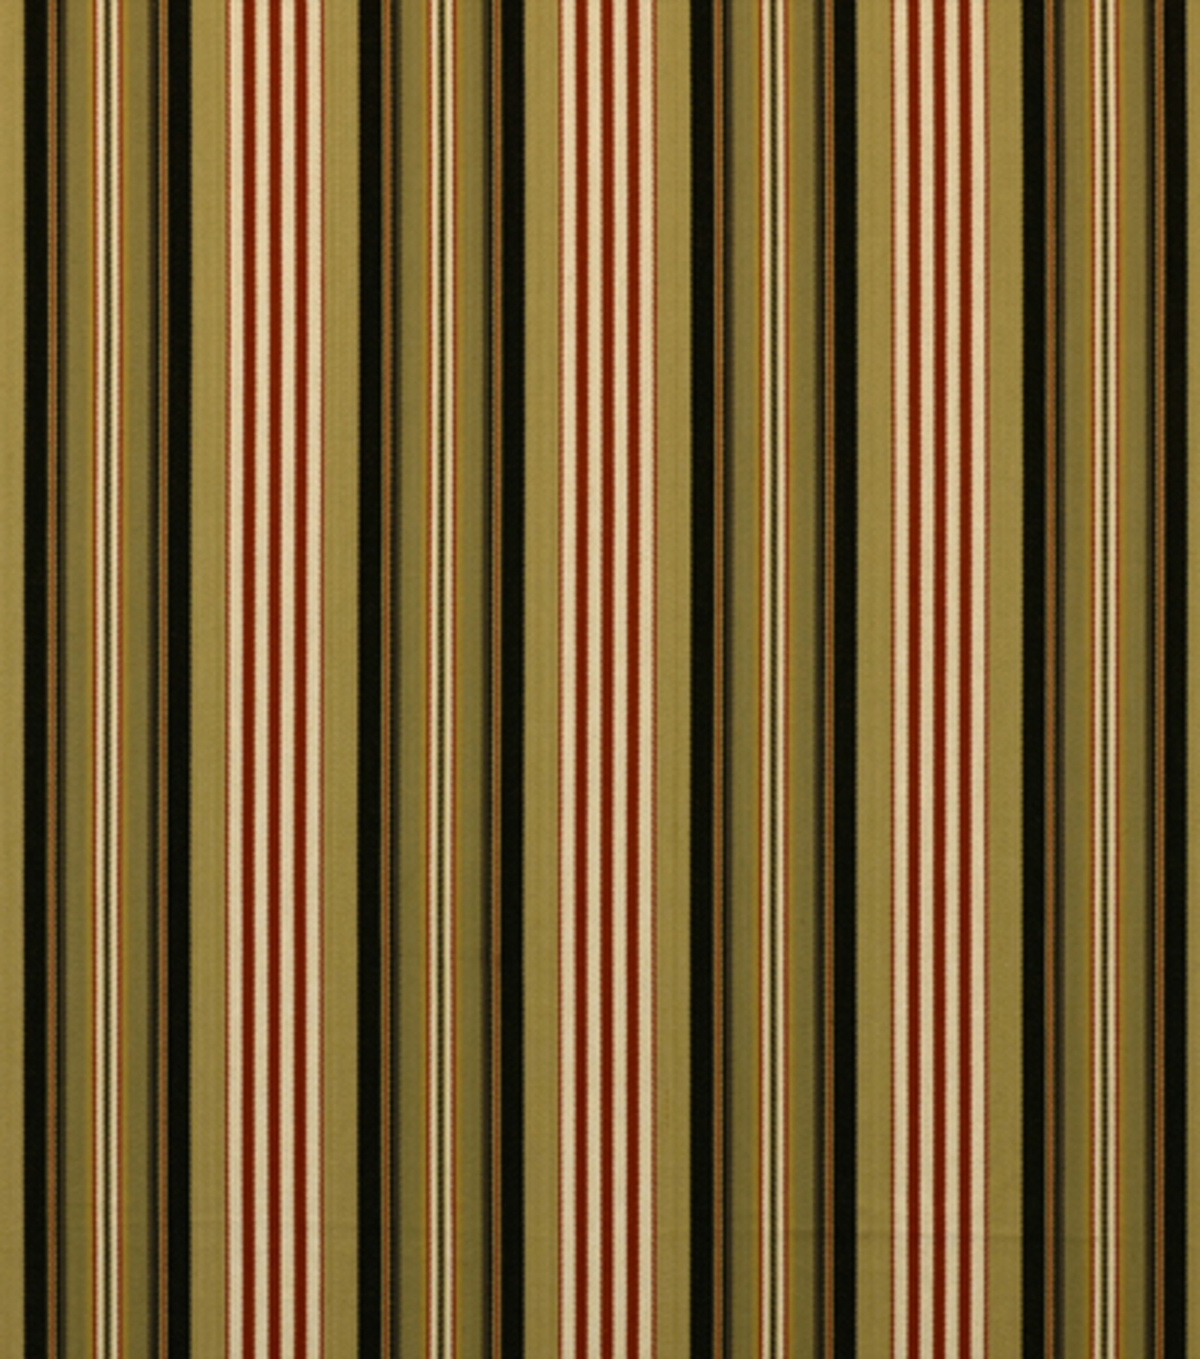 Home Decor 8\u0022x8\u0022 Fabric Swatch-Covington Mesa Stripe 936 Black/Tan